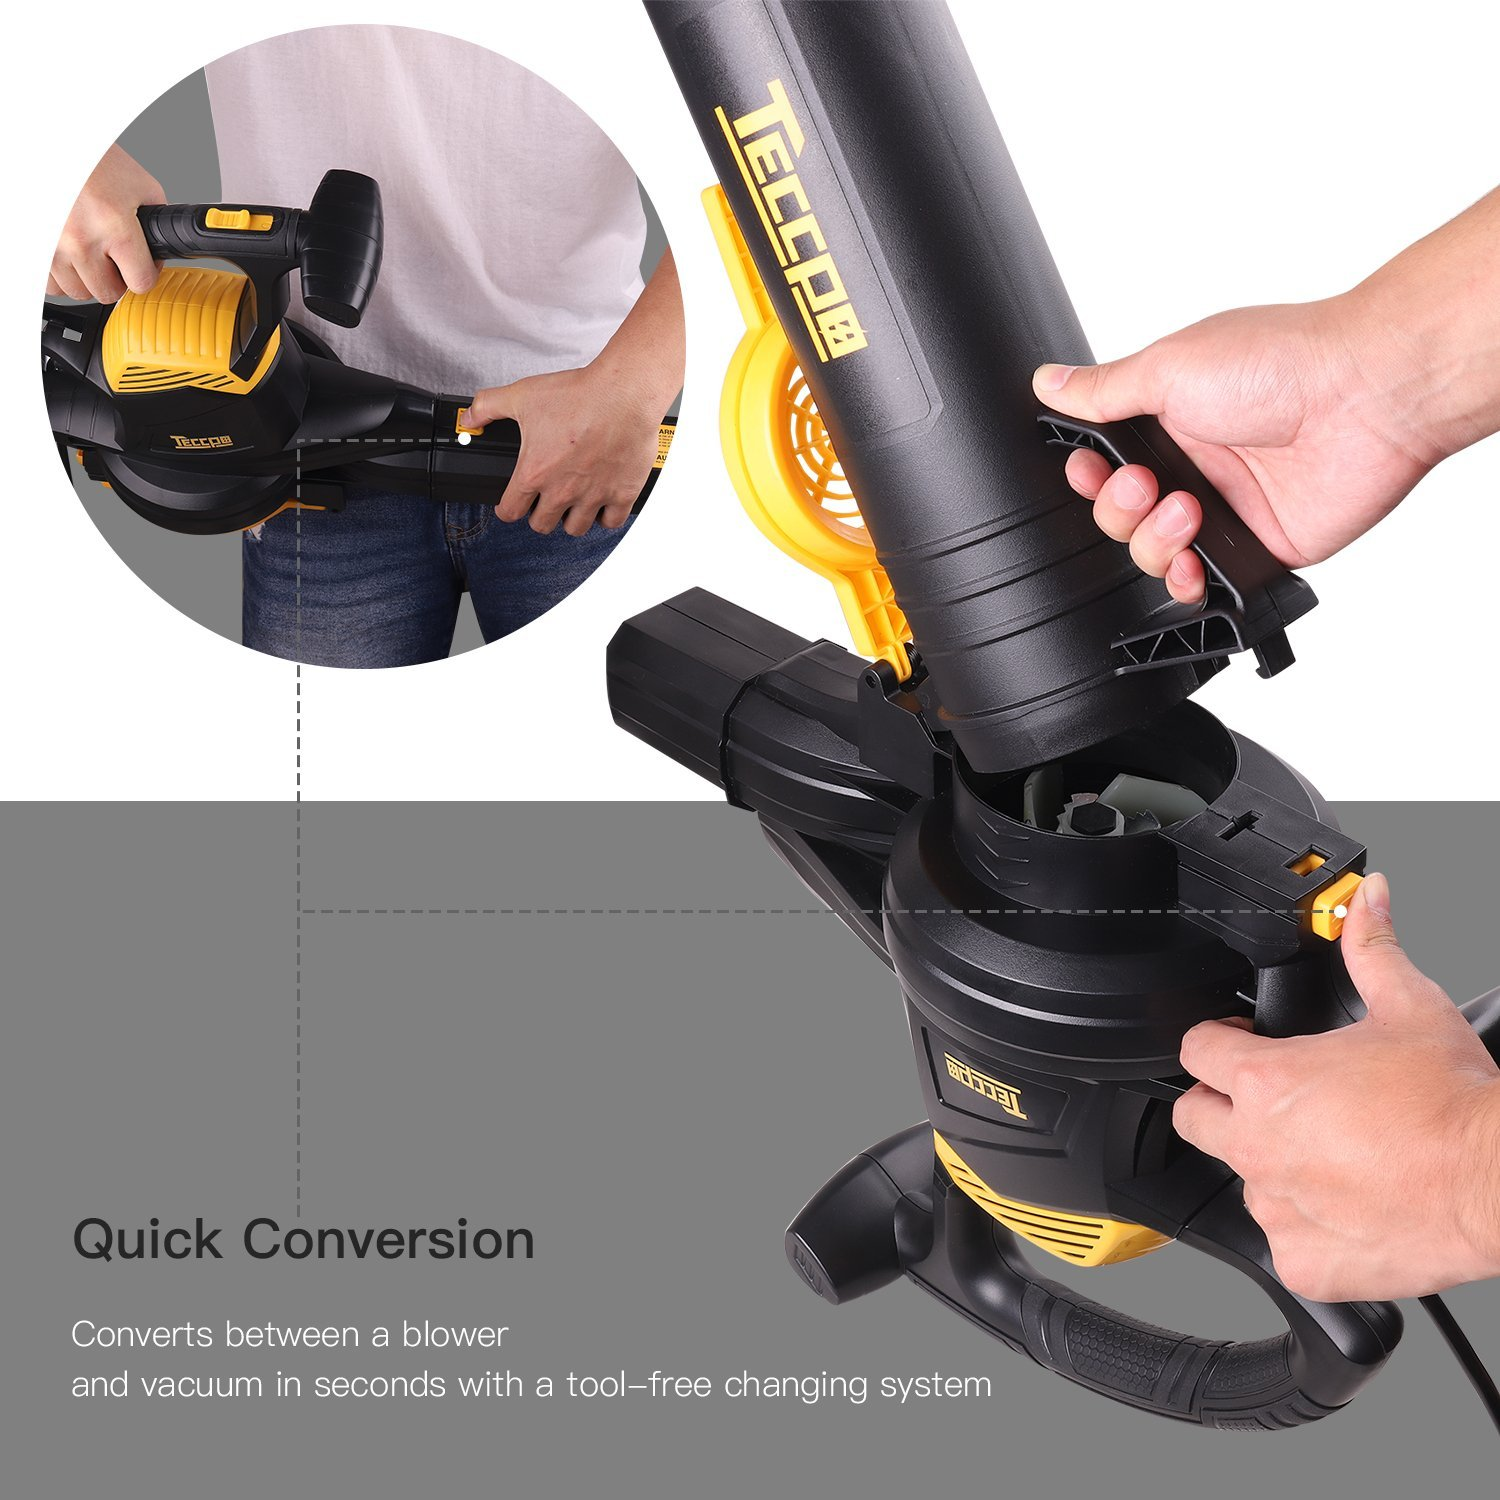 Leaf Blower Vacuum, TECCPO TABV01G 12-Amp 250MPH 410CFM 3 in 1 corded electric Two-Speed Sweeper/Vac/Mulcher, Plastic Impeller Metal Blade, Ideal for Lawn and Garden by TECCPO (Image #5)